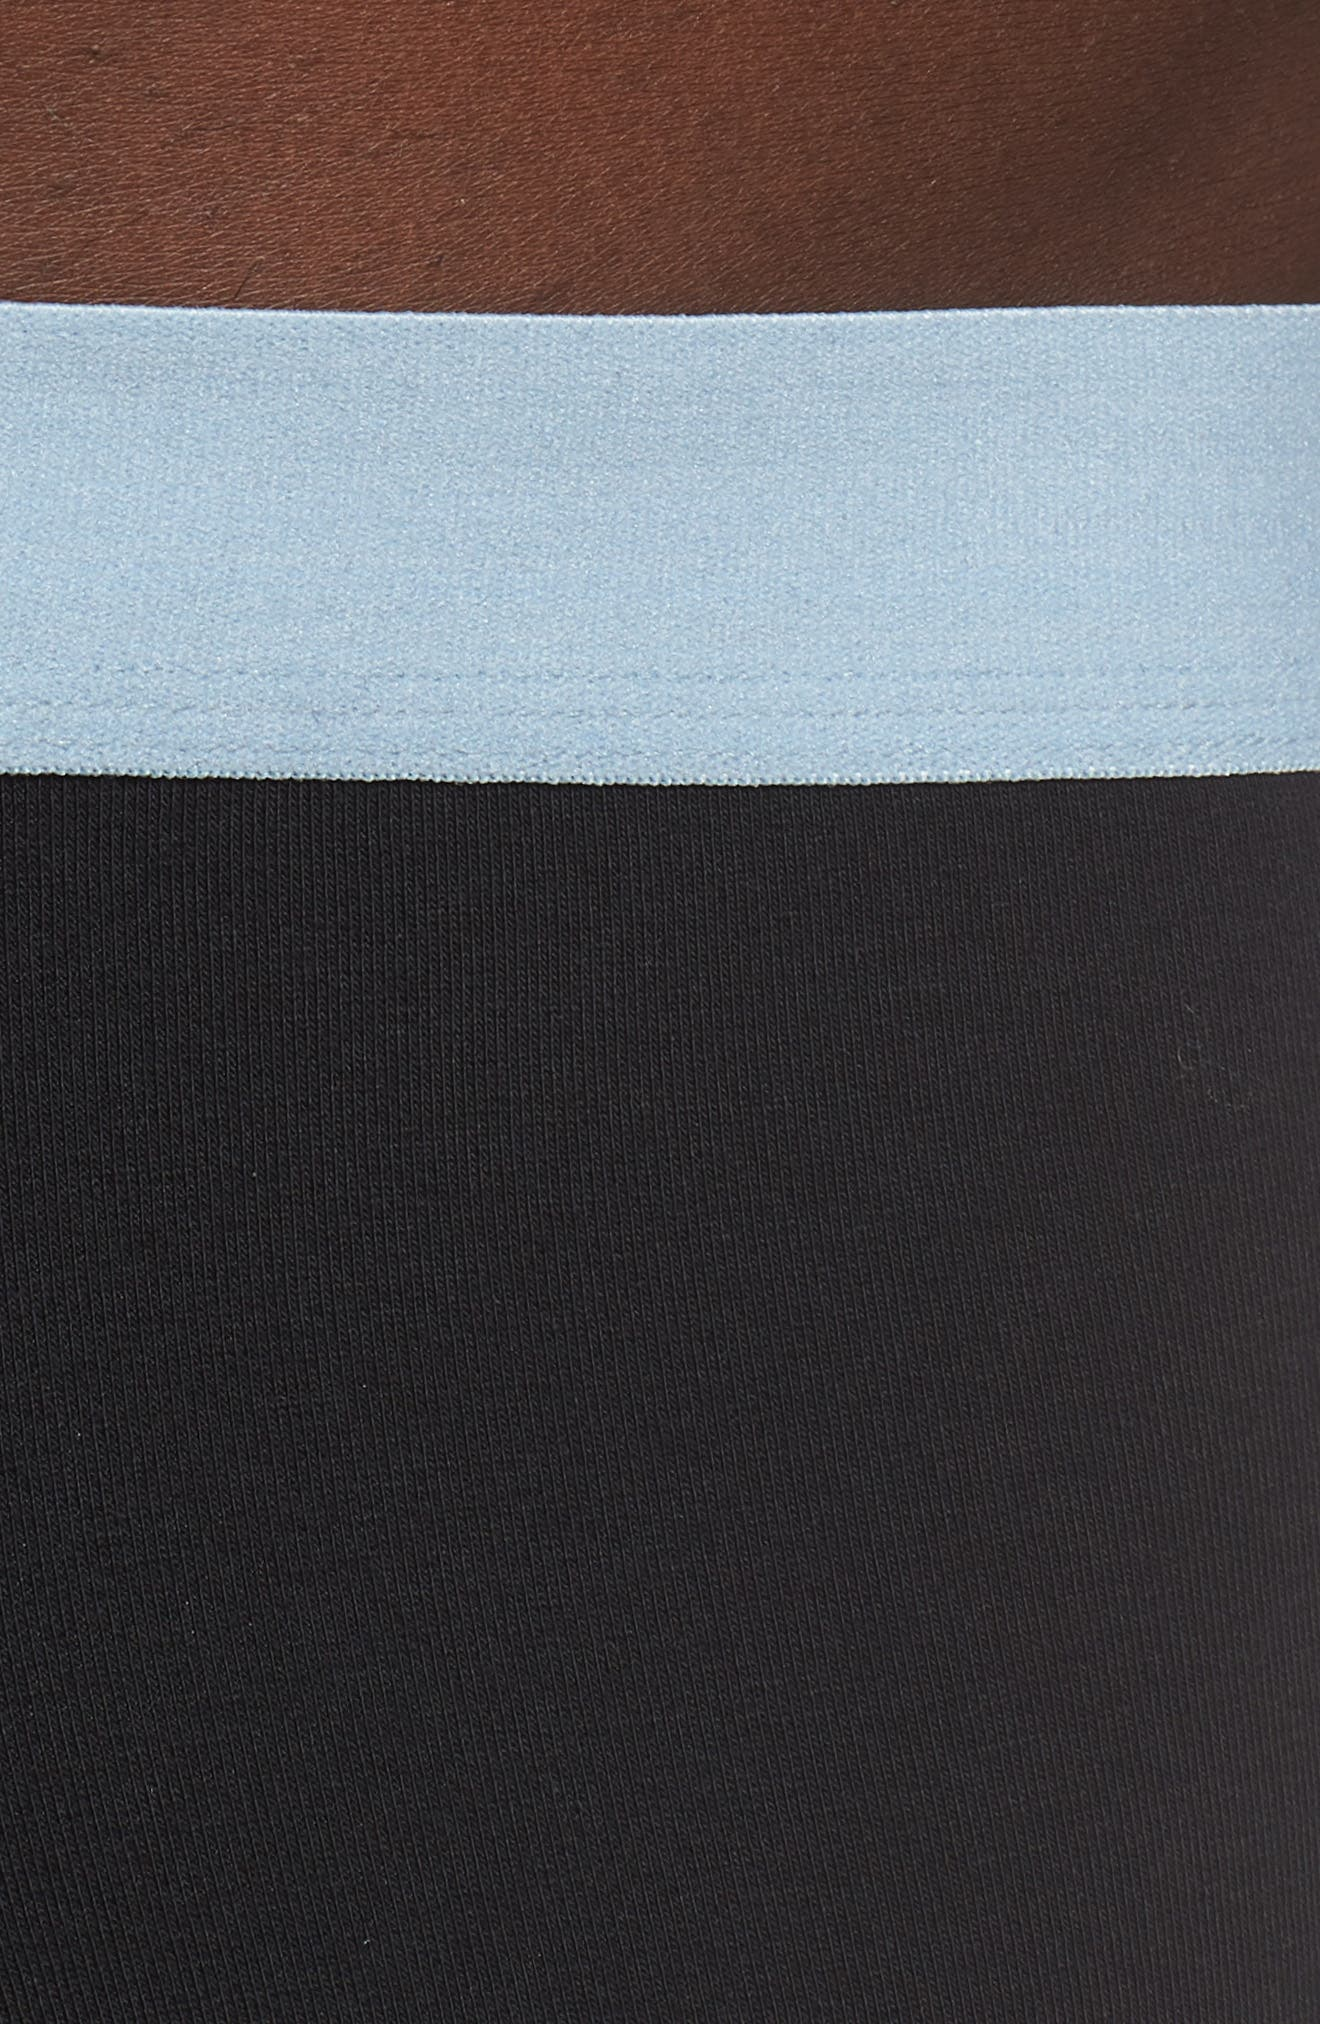 Cotton Trunks,                             Alternate thumbnail 4, color,                             LIGHT BLUE